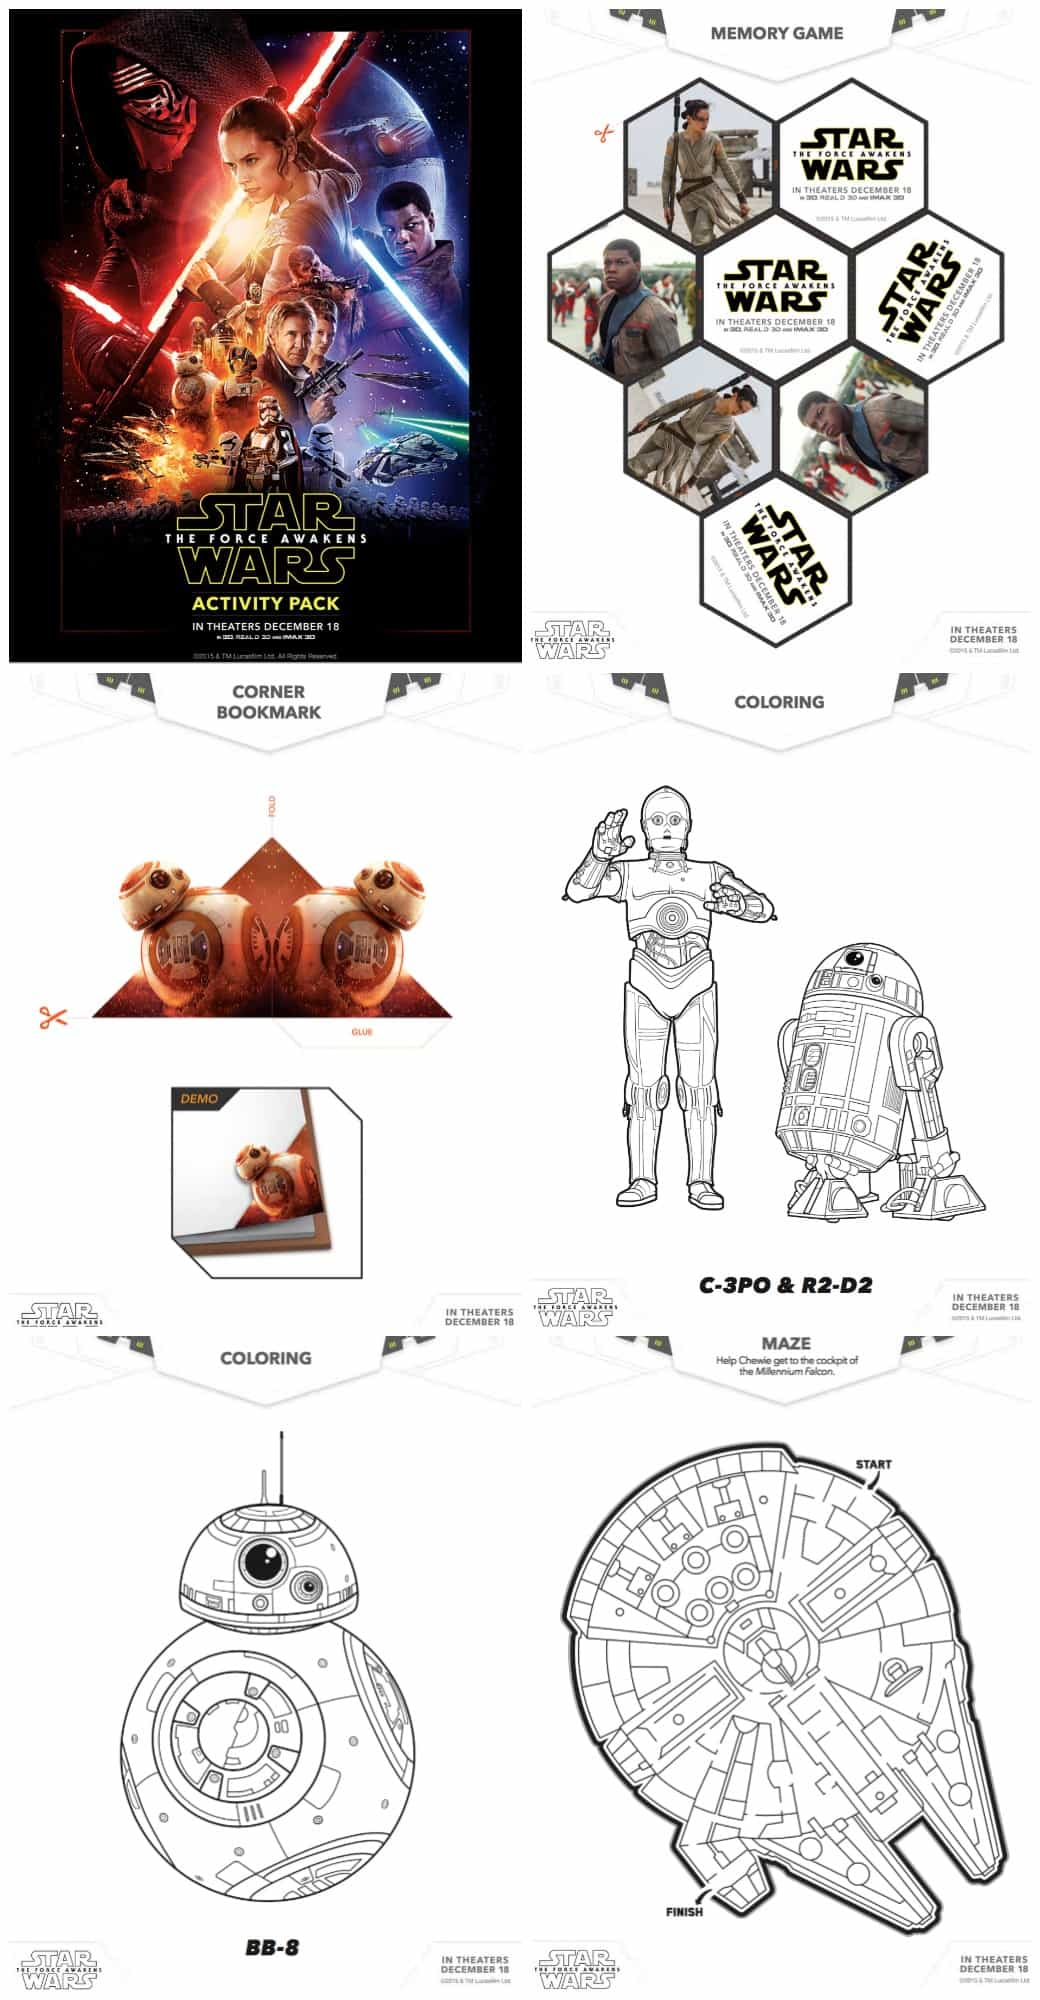 Free Star Wars Activity Pack with Star Wars Coloring Sheets